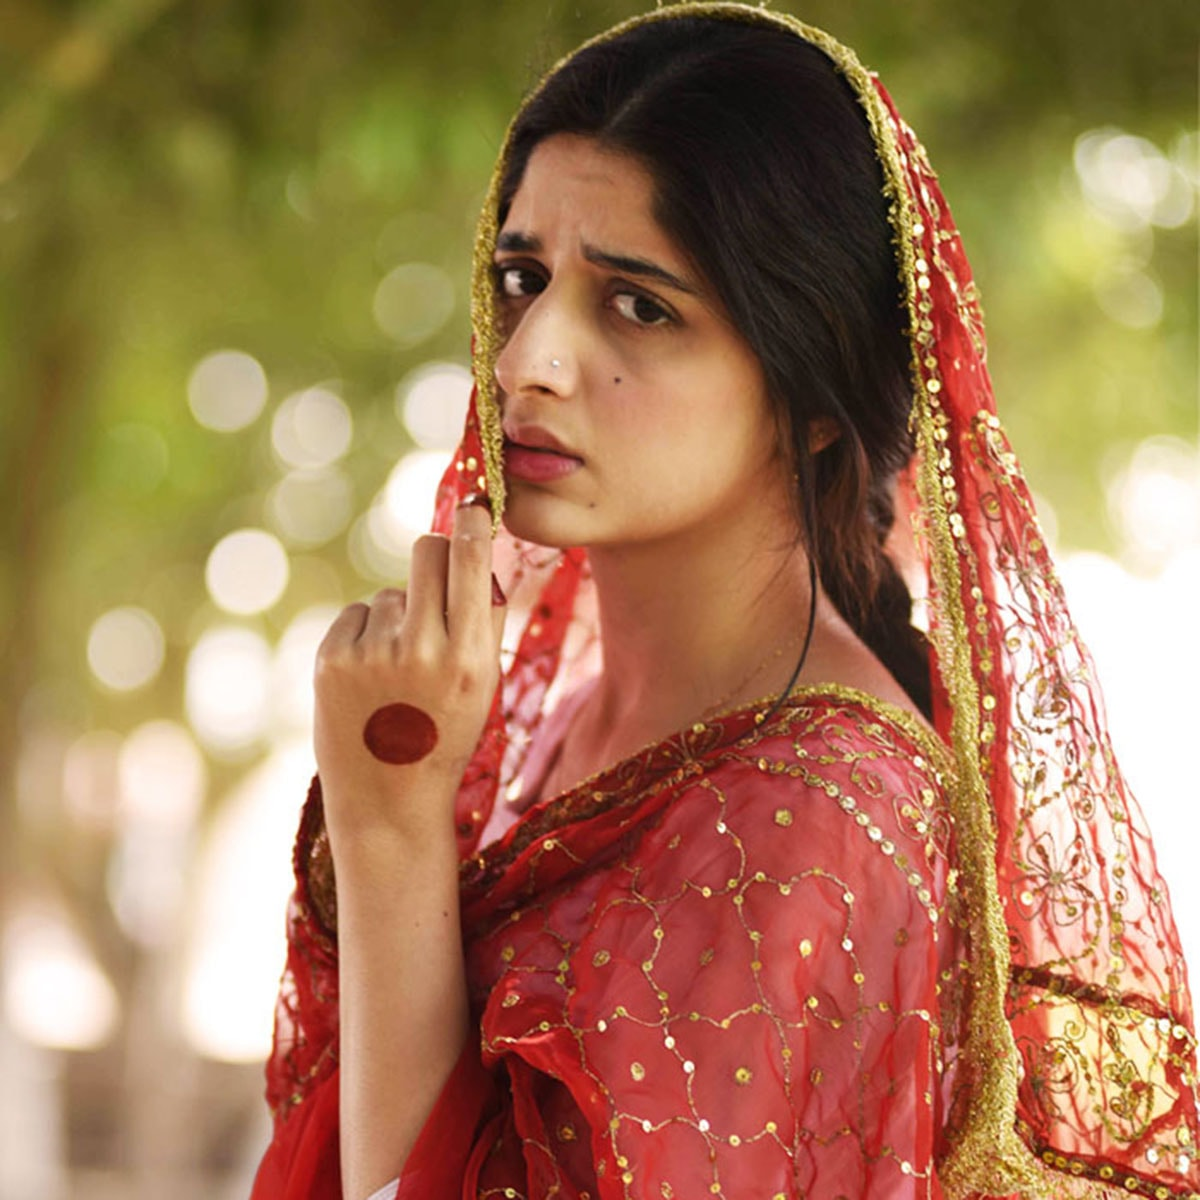 Mawra Hocane plays the role of the obedient Sammi, one who is too scared for her future.